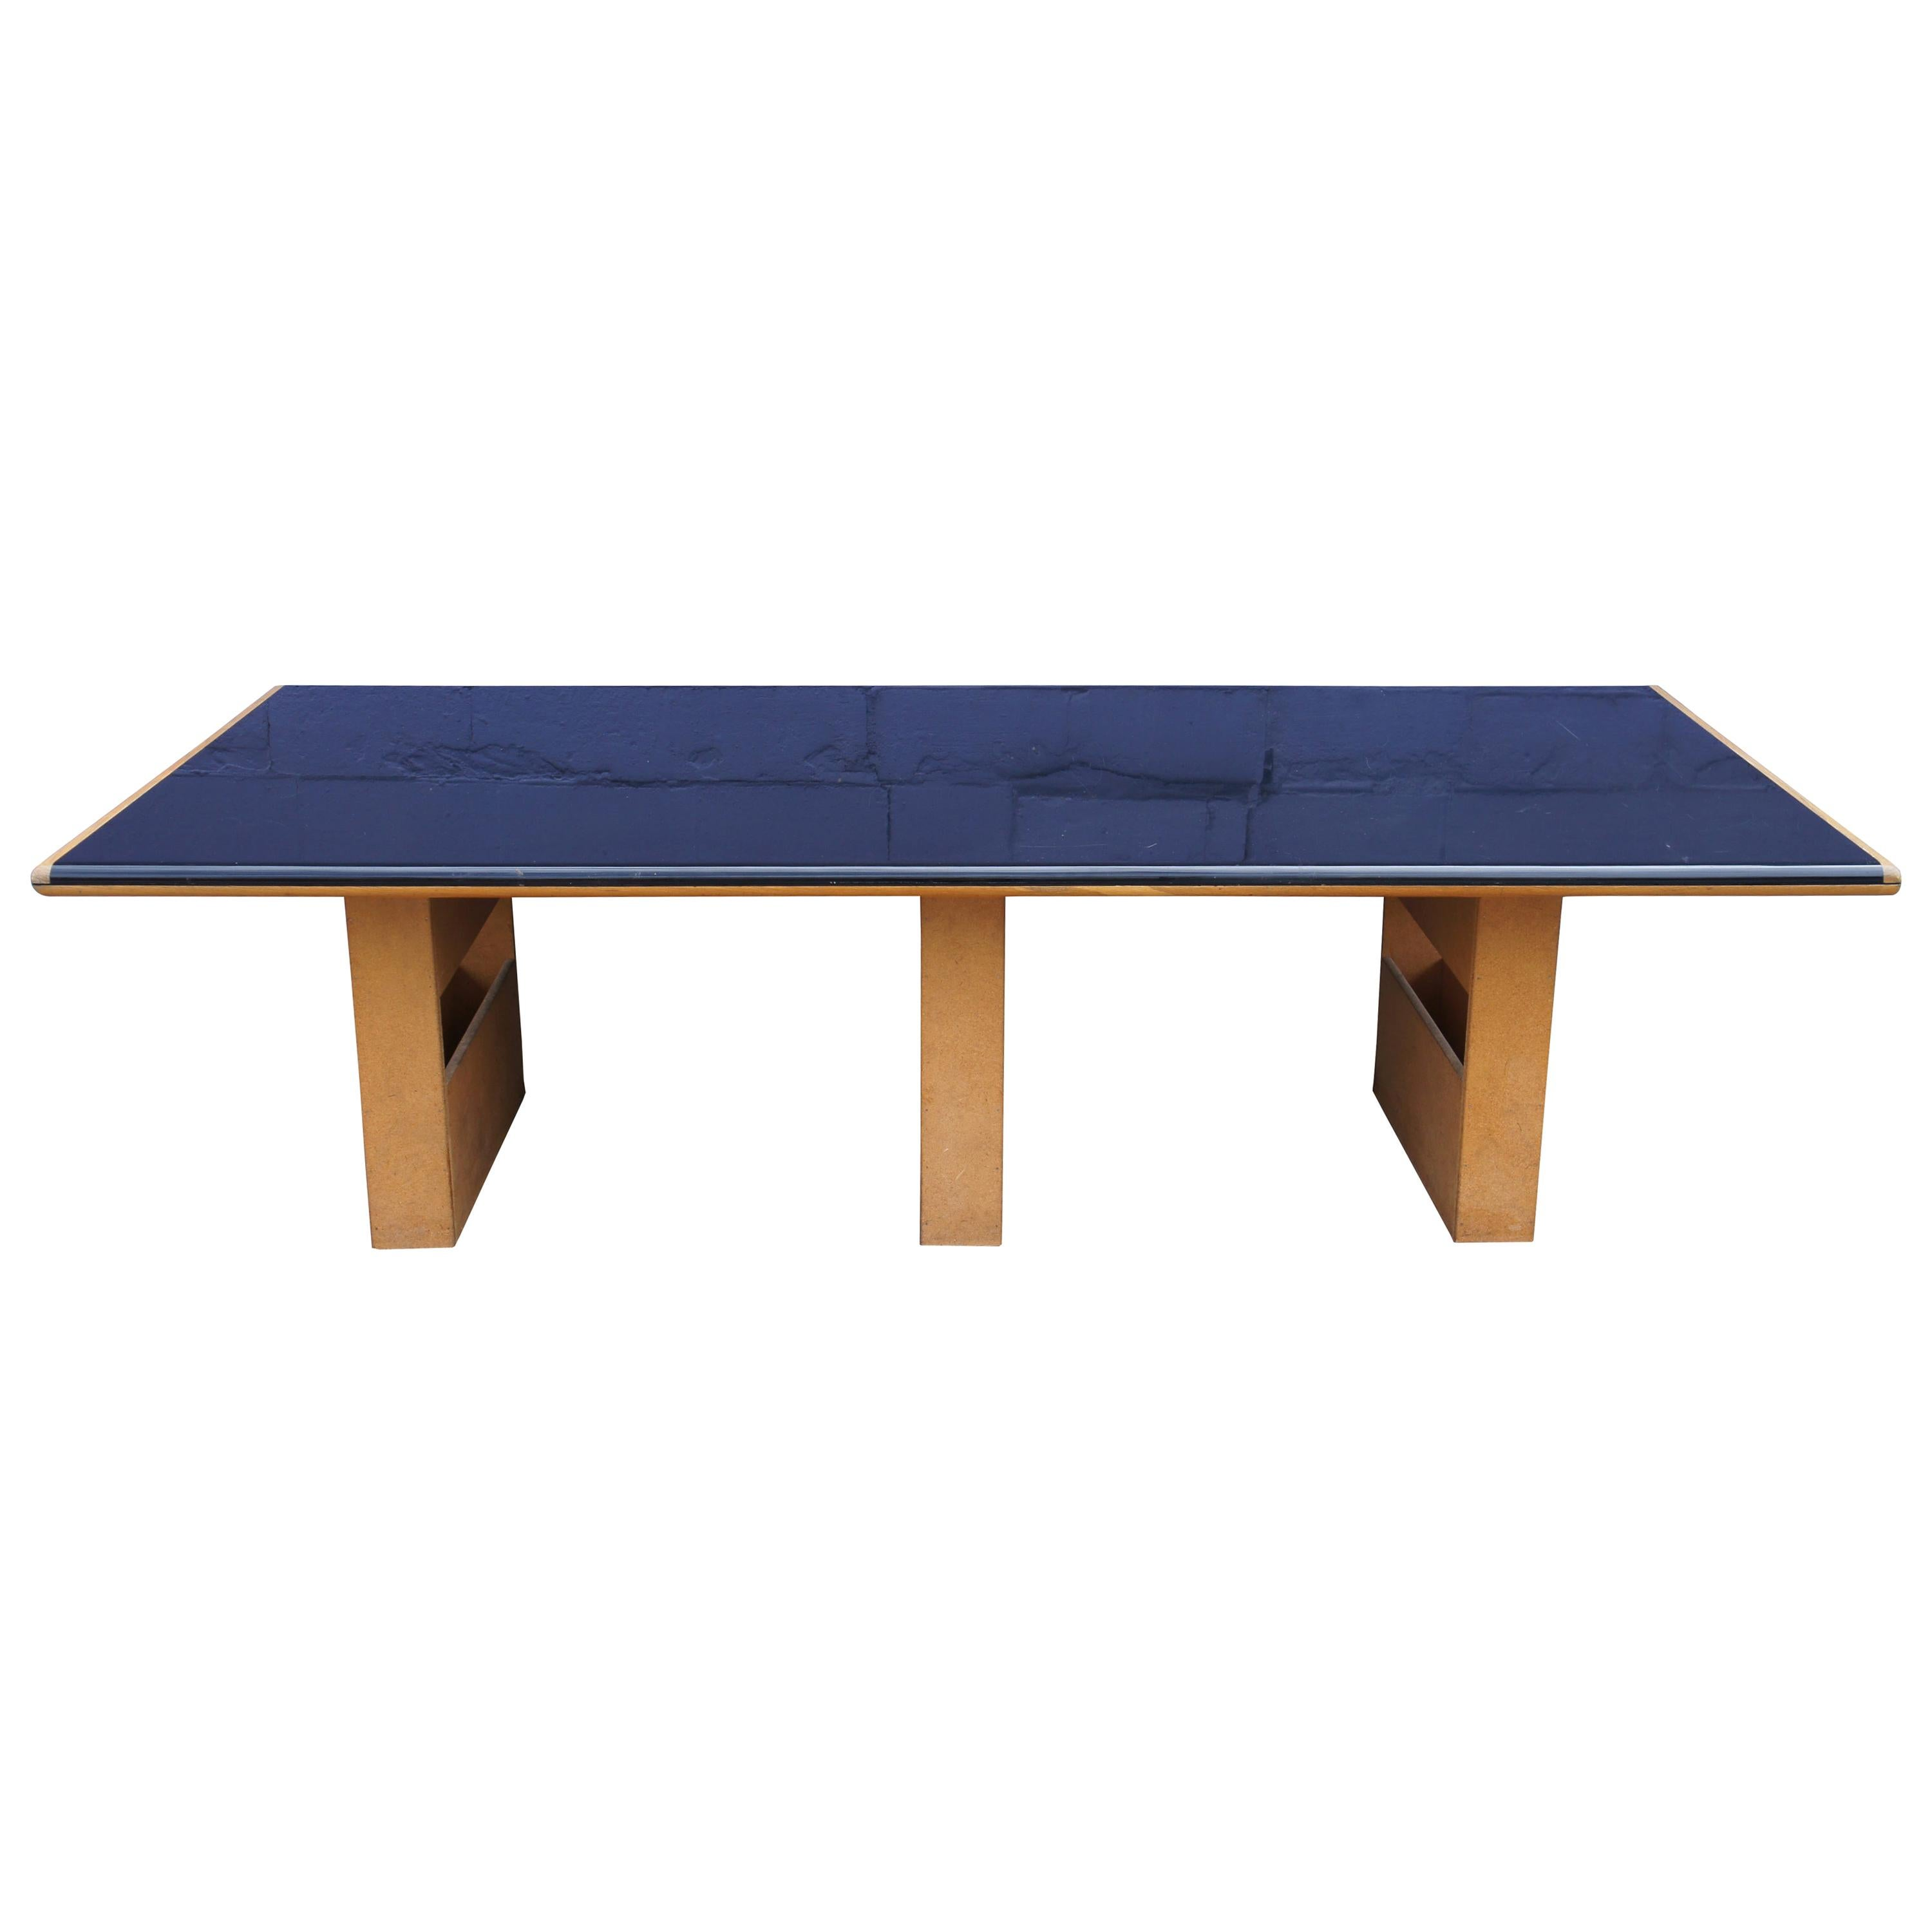 Vintage Black Formica and Oak Conference Table Contemporary Modern